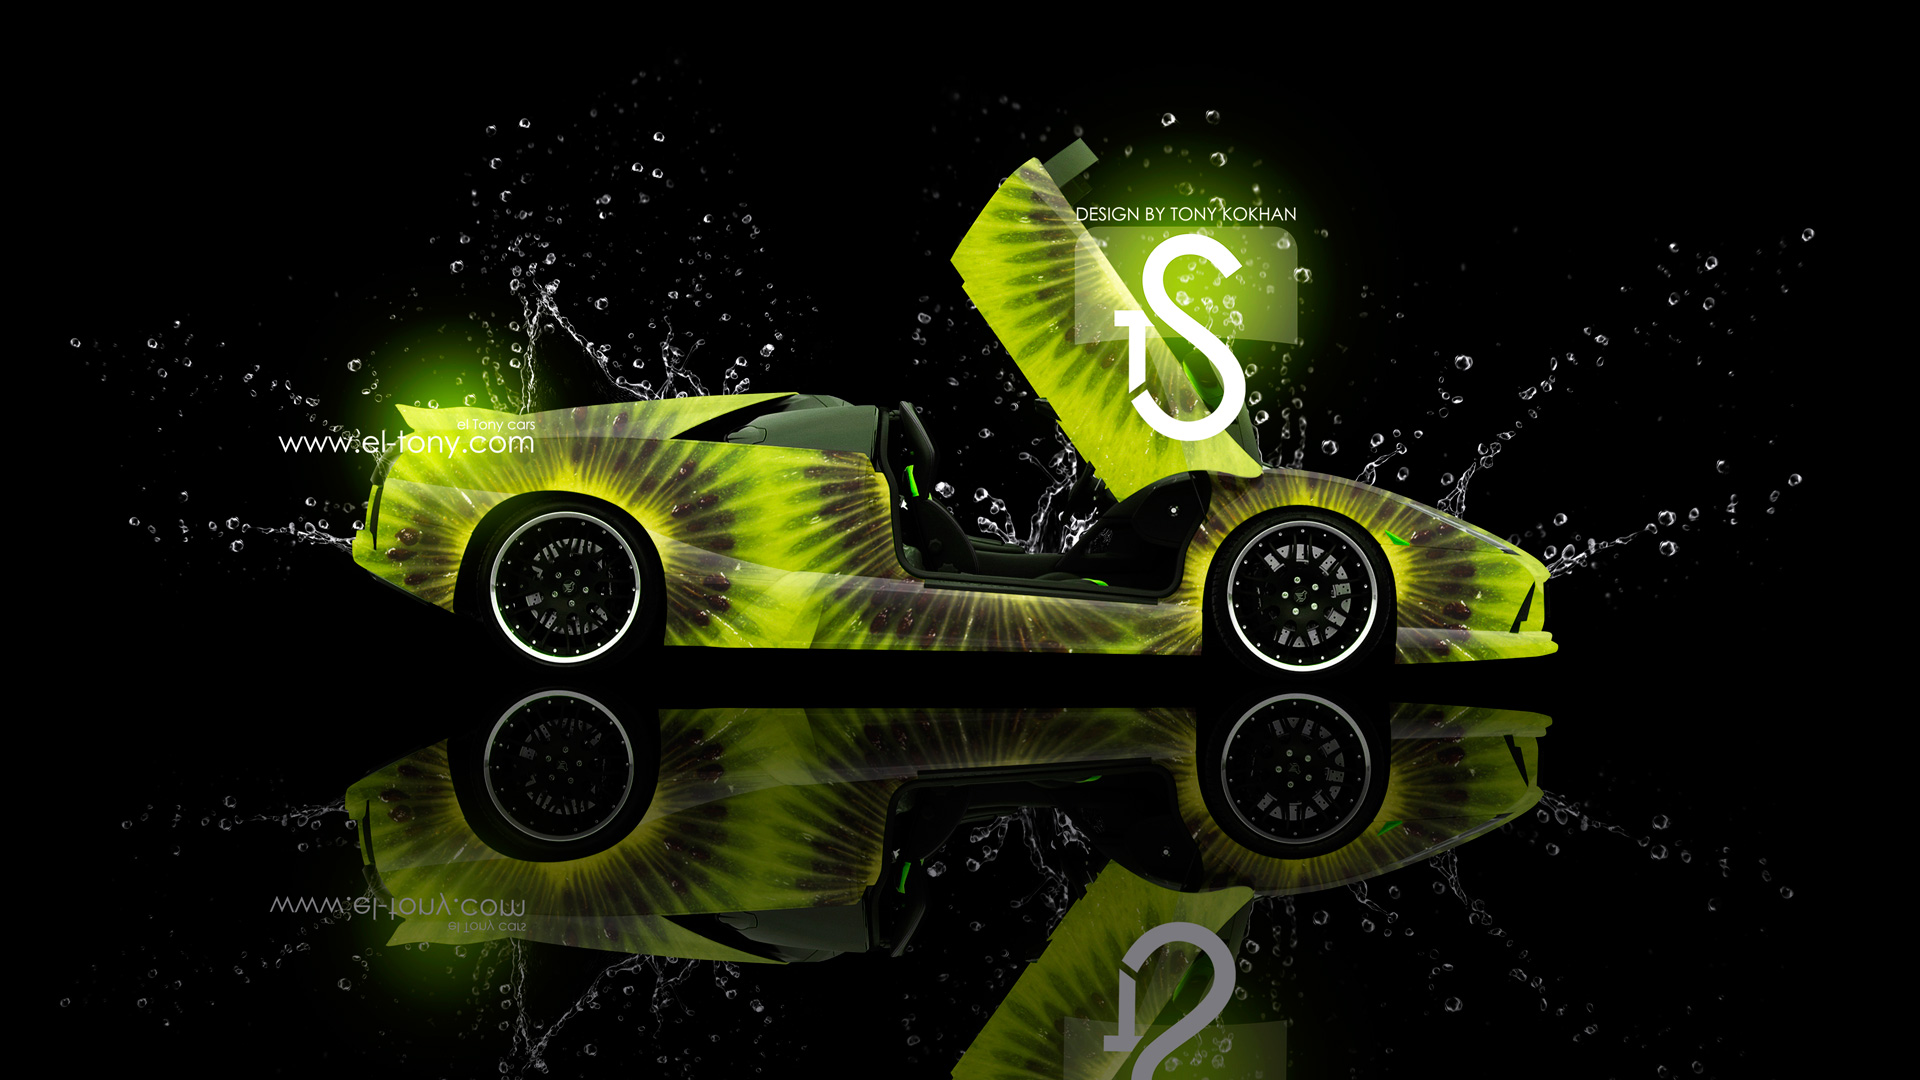 Genial Lamborghini Murcielago Kiwi Water Style 2013 HD Wallpapers